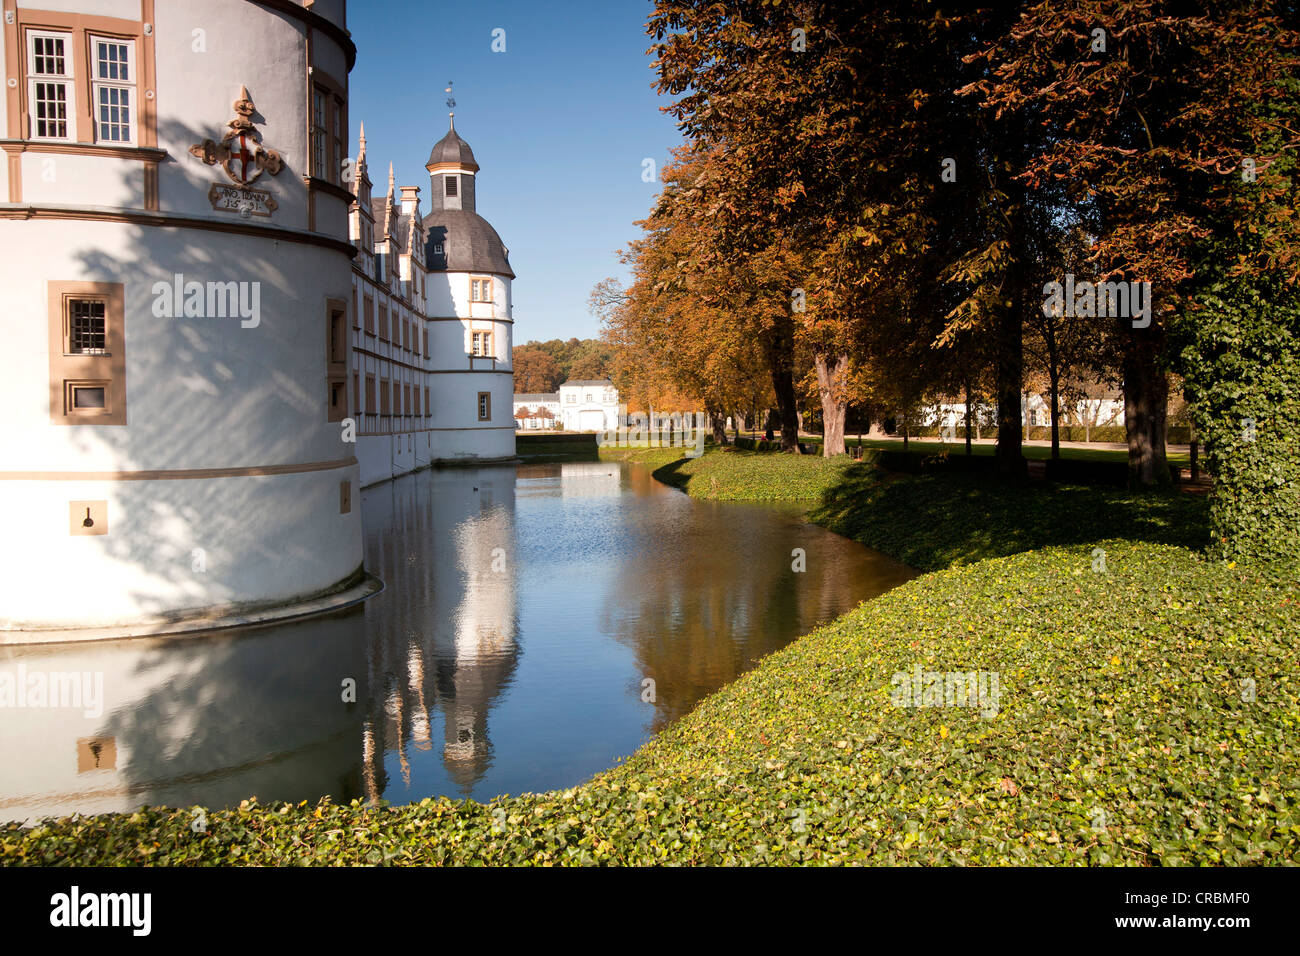 Moat around Schloss Neuhaus castle, an outstanding Weser-Renaissance building in Paderborn, North Rhine-Westphalia - Stock Image